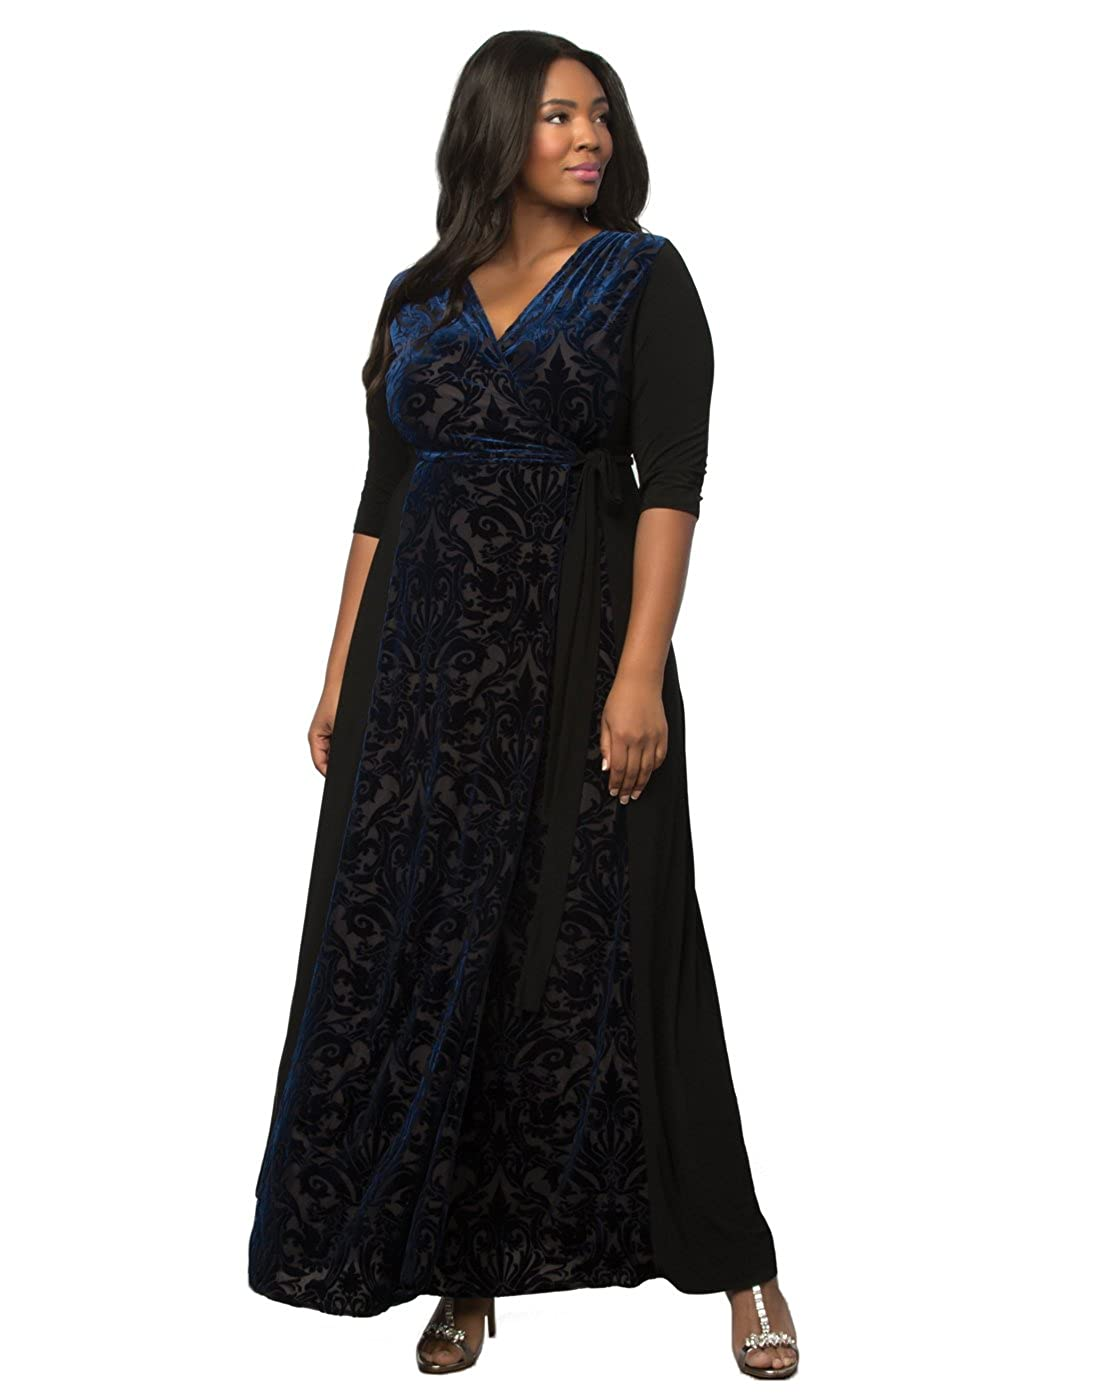 e1c6ca89200 Kiyonna Women s Plus Size Ornate Velvet Maxi Dress 3X Midnight Navy ...